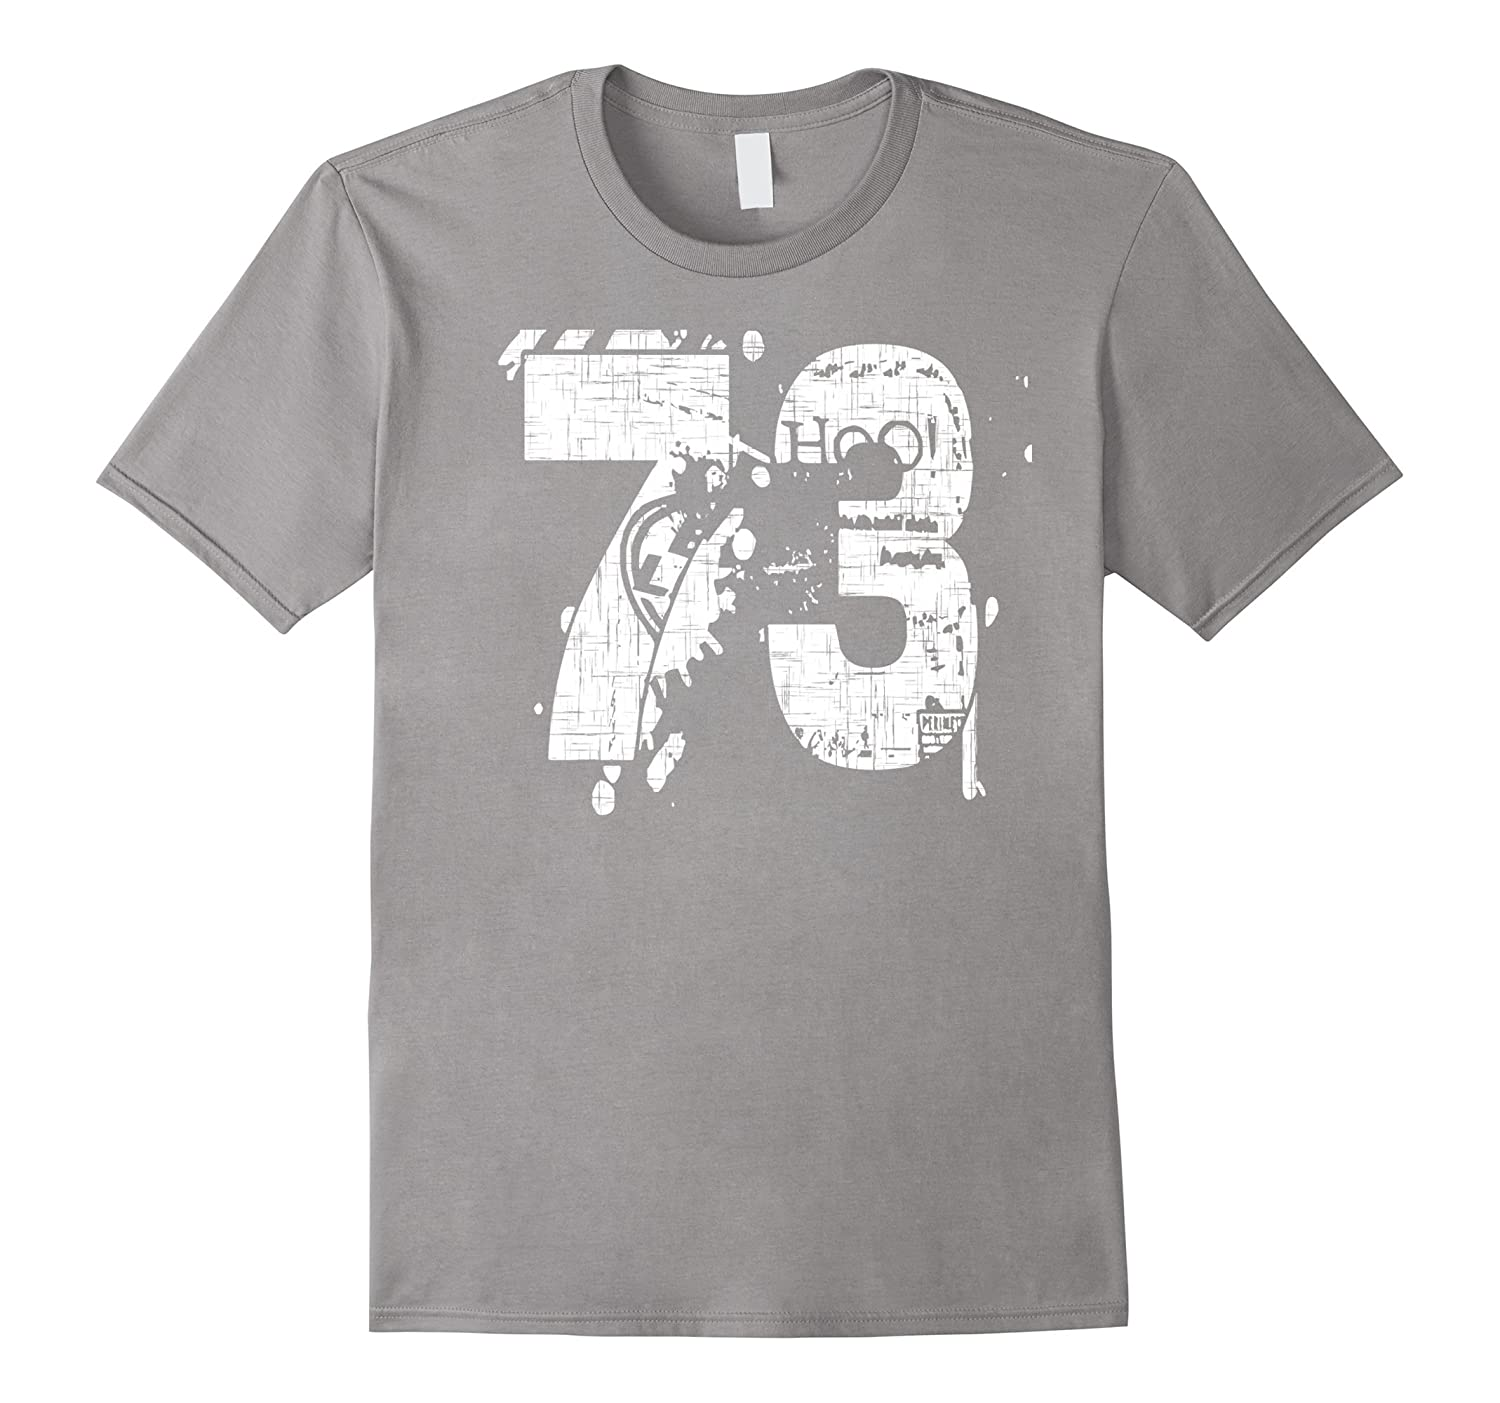 73 Numbered T-Shirt printed front and back in super grunge-PL